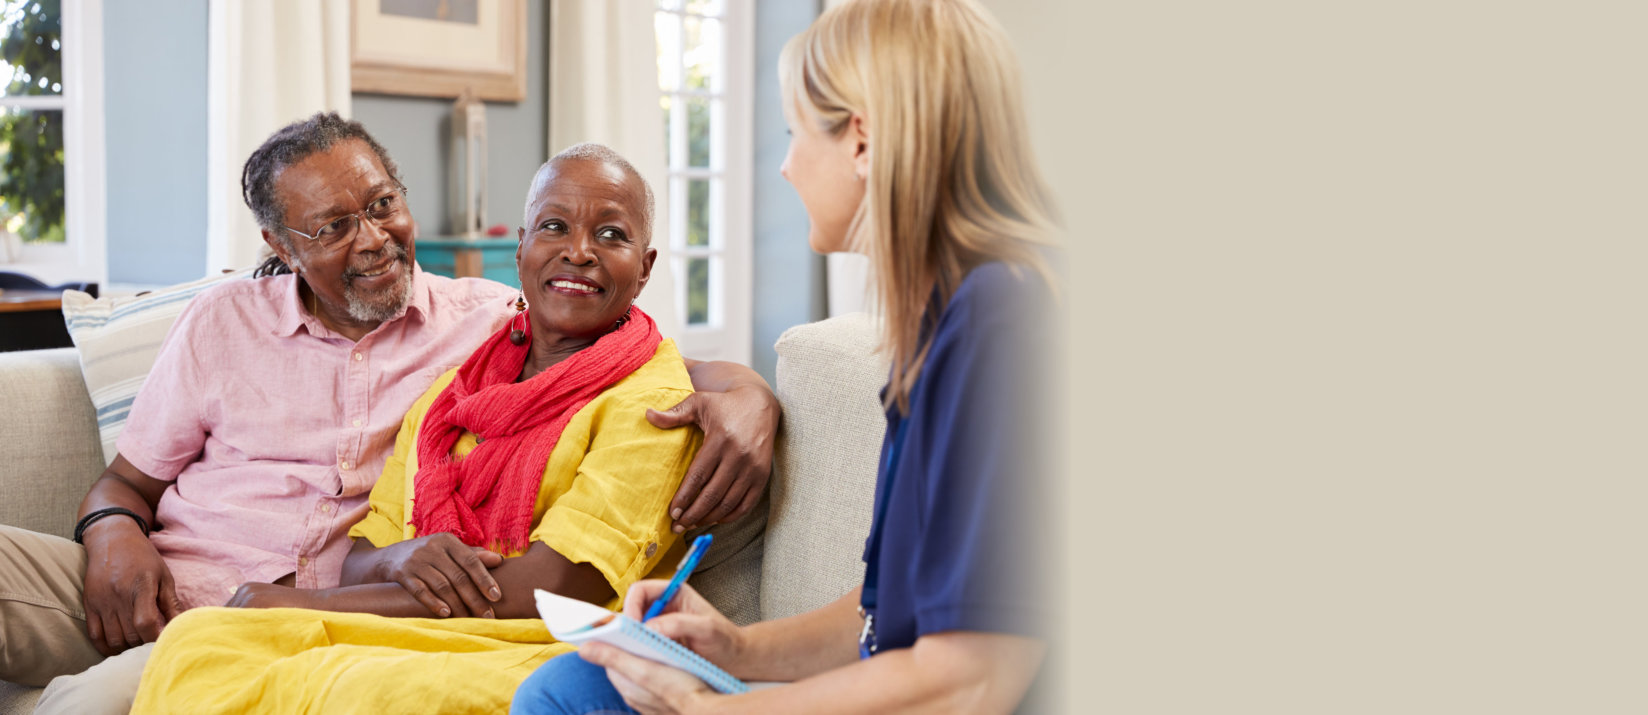 caregiver with to senior people